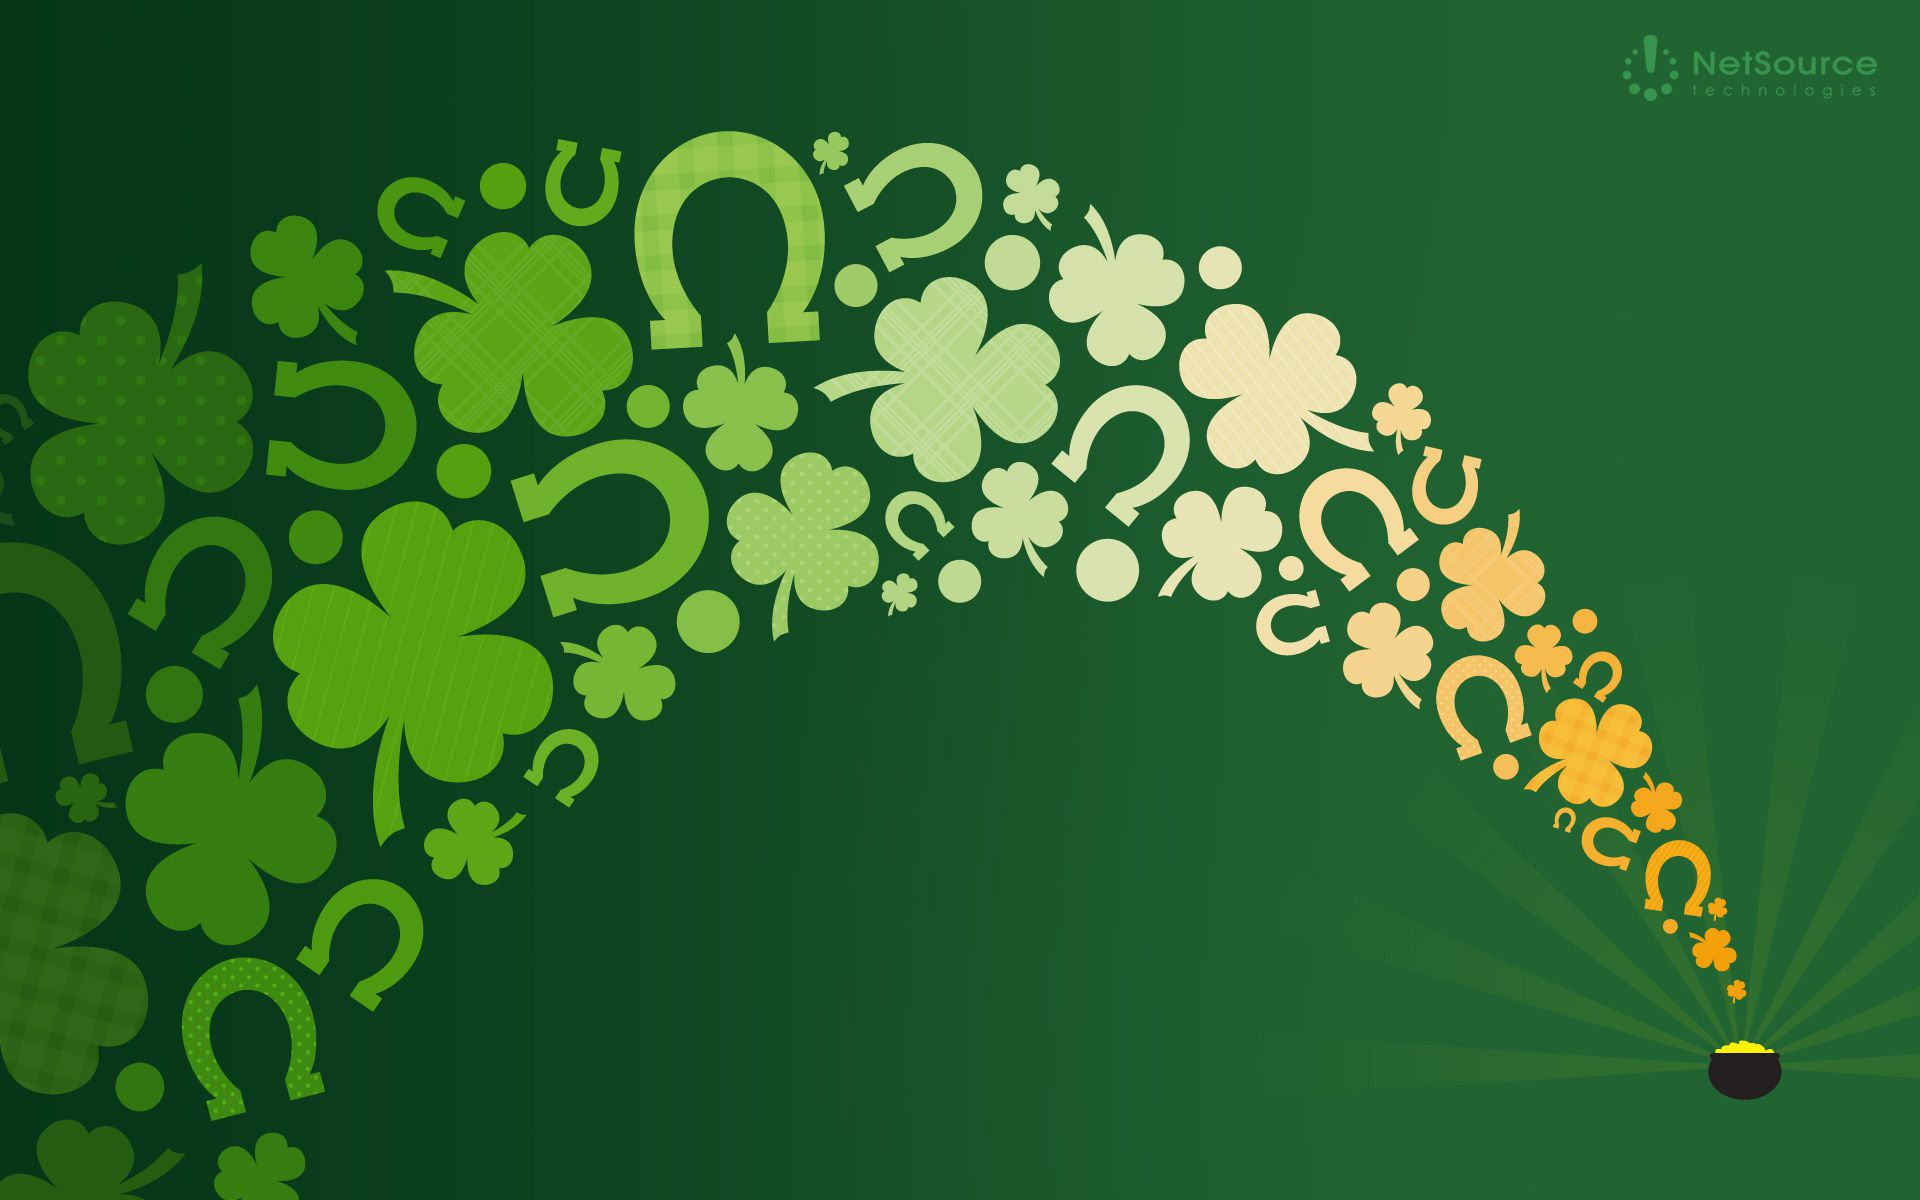 St Patricks Day Wallpapers and Background Images   stmednet 1920x1200